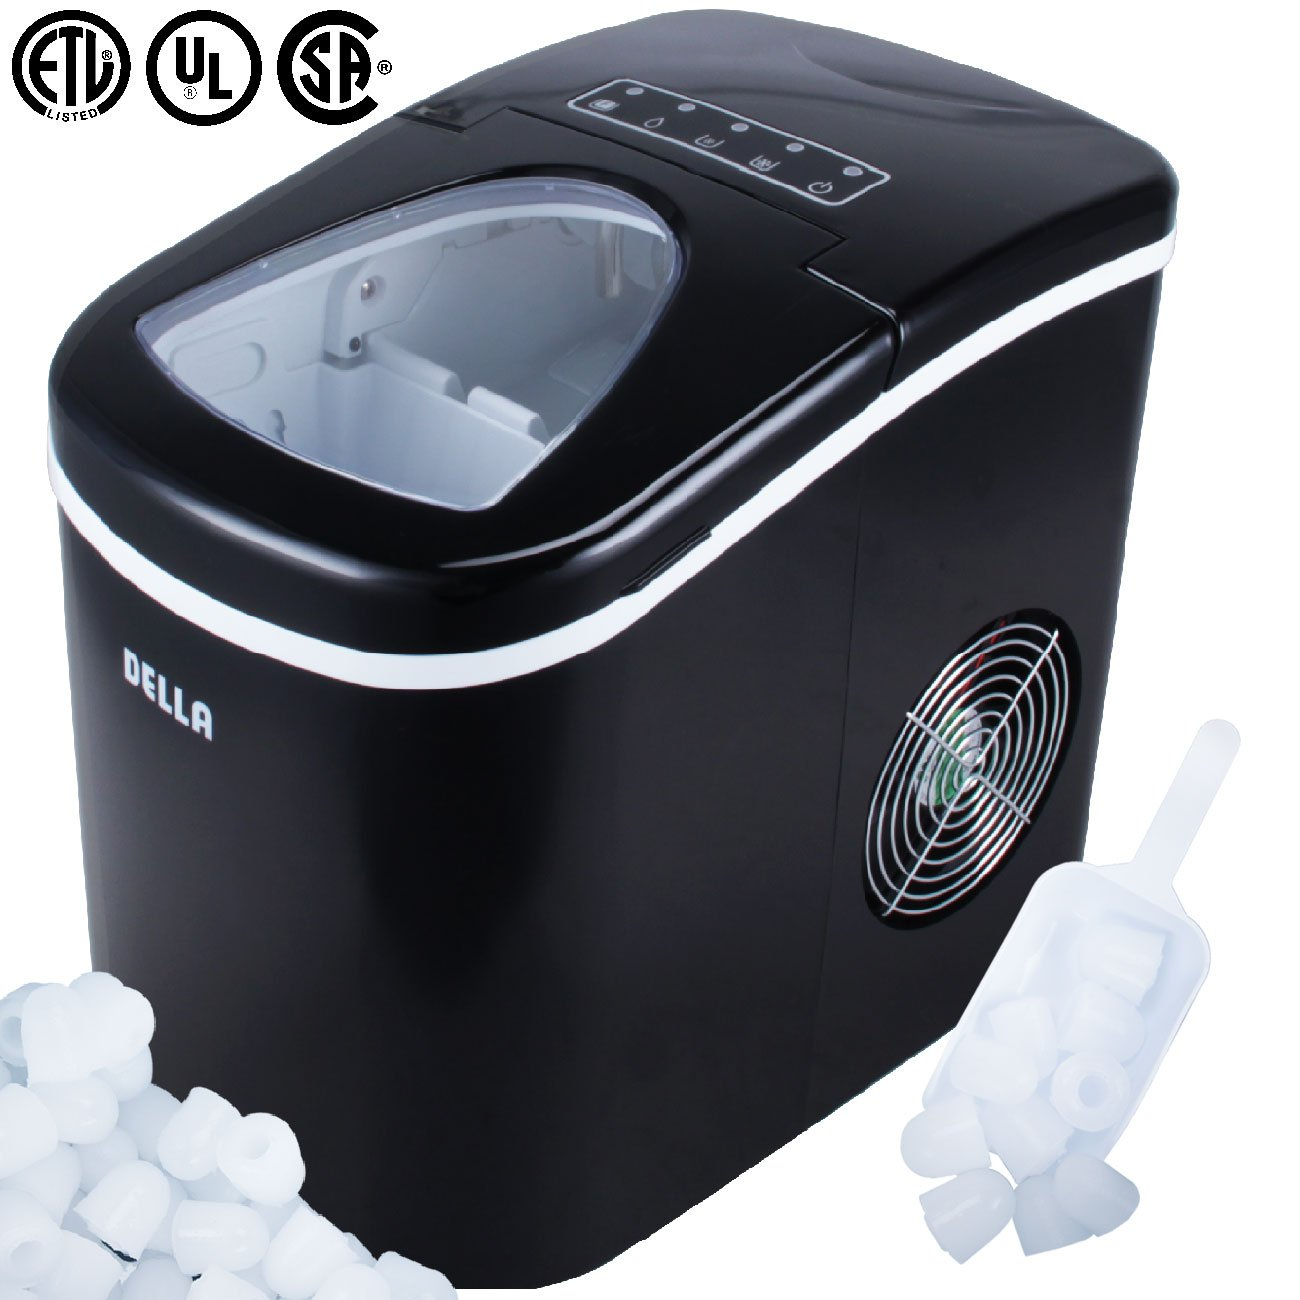 Della Portable Ice Maker, Produces up to 26 lbs. of Ice Daily, 2-Size (Black) 048-GM-48186